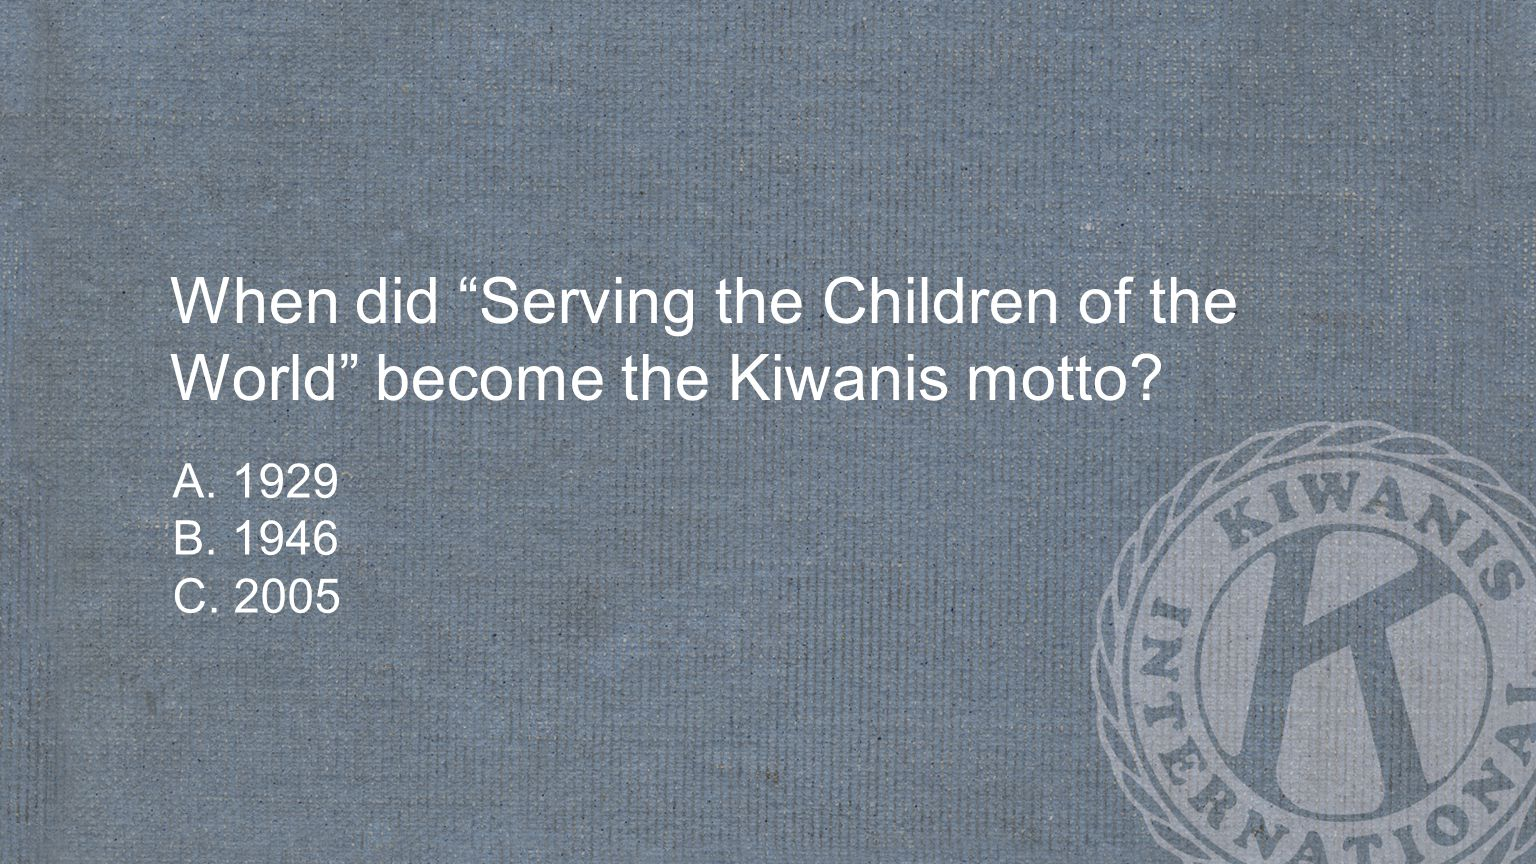 When did Serving the Children of the World become the Kiwanis motto